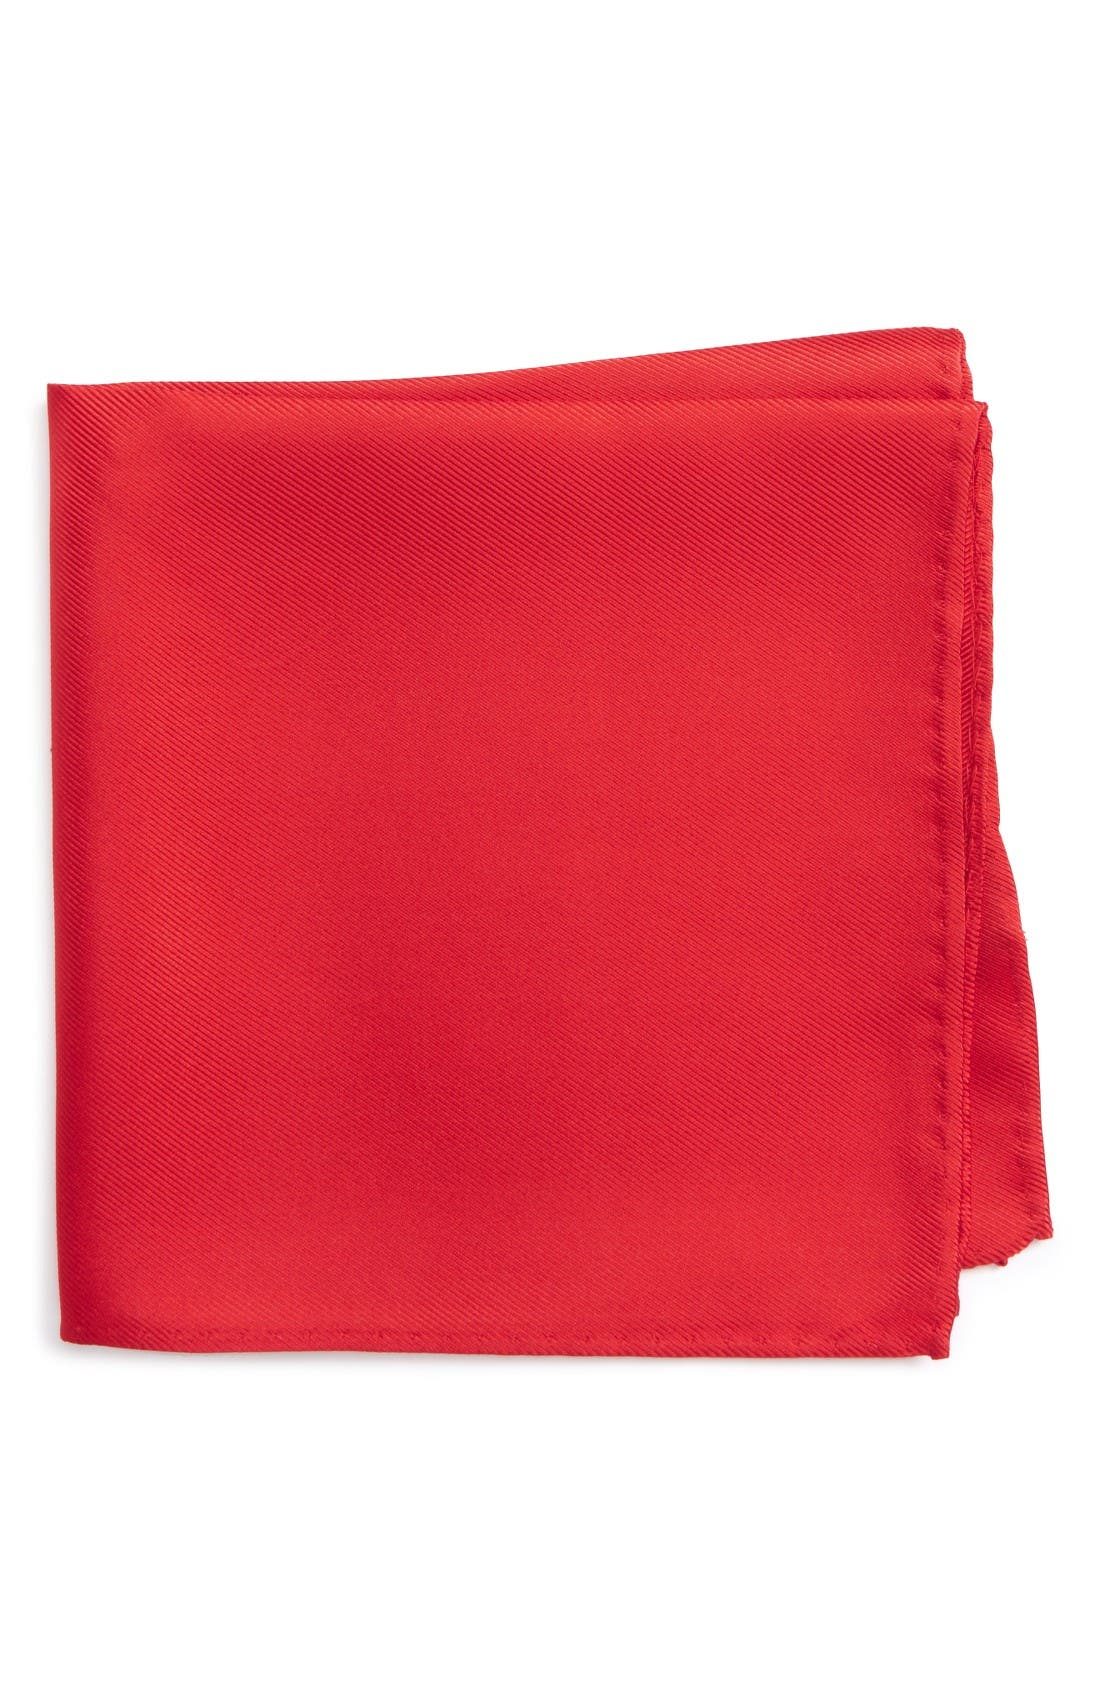 Solid Silk Pocket Square,                             Main thumbnail 1, color,                             Red